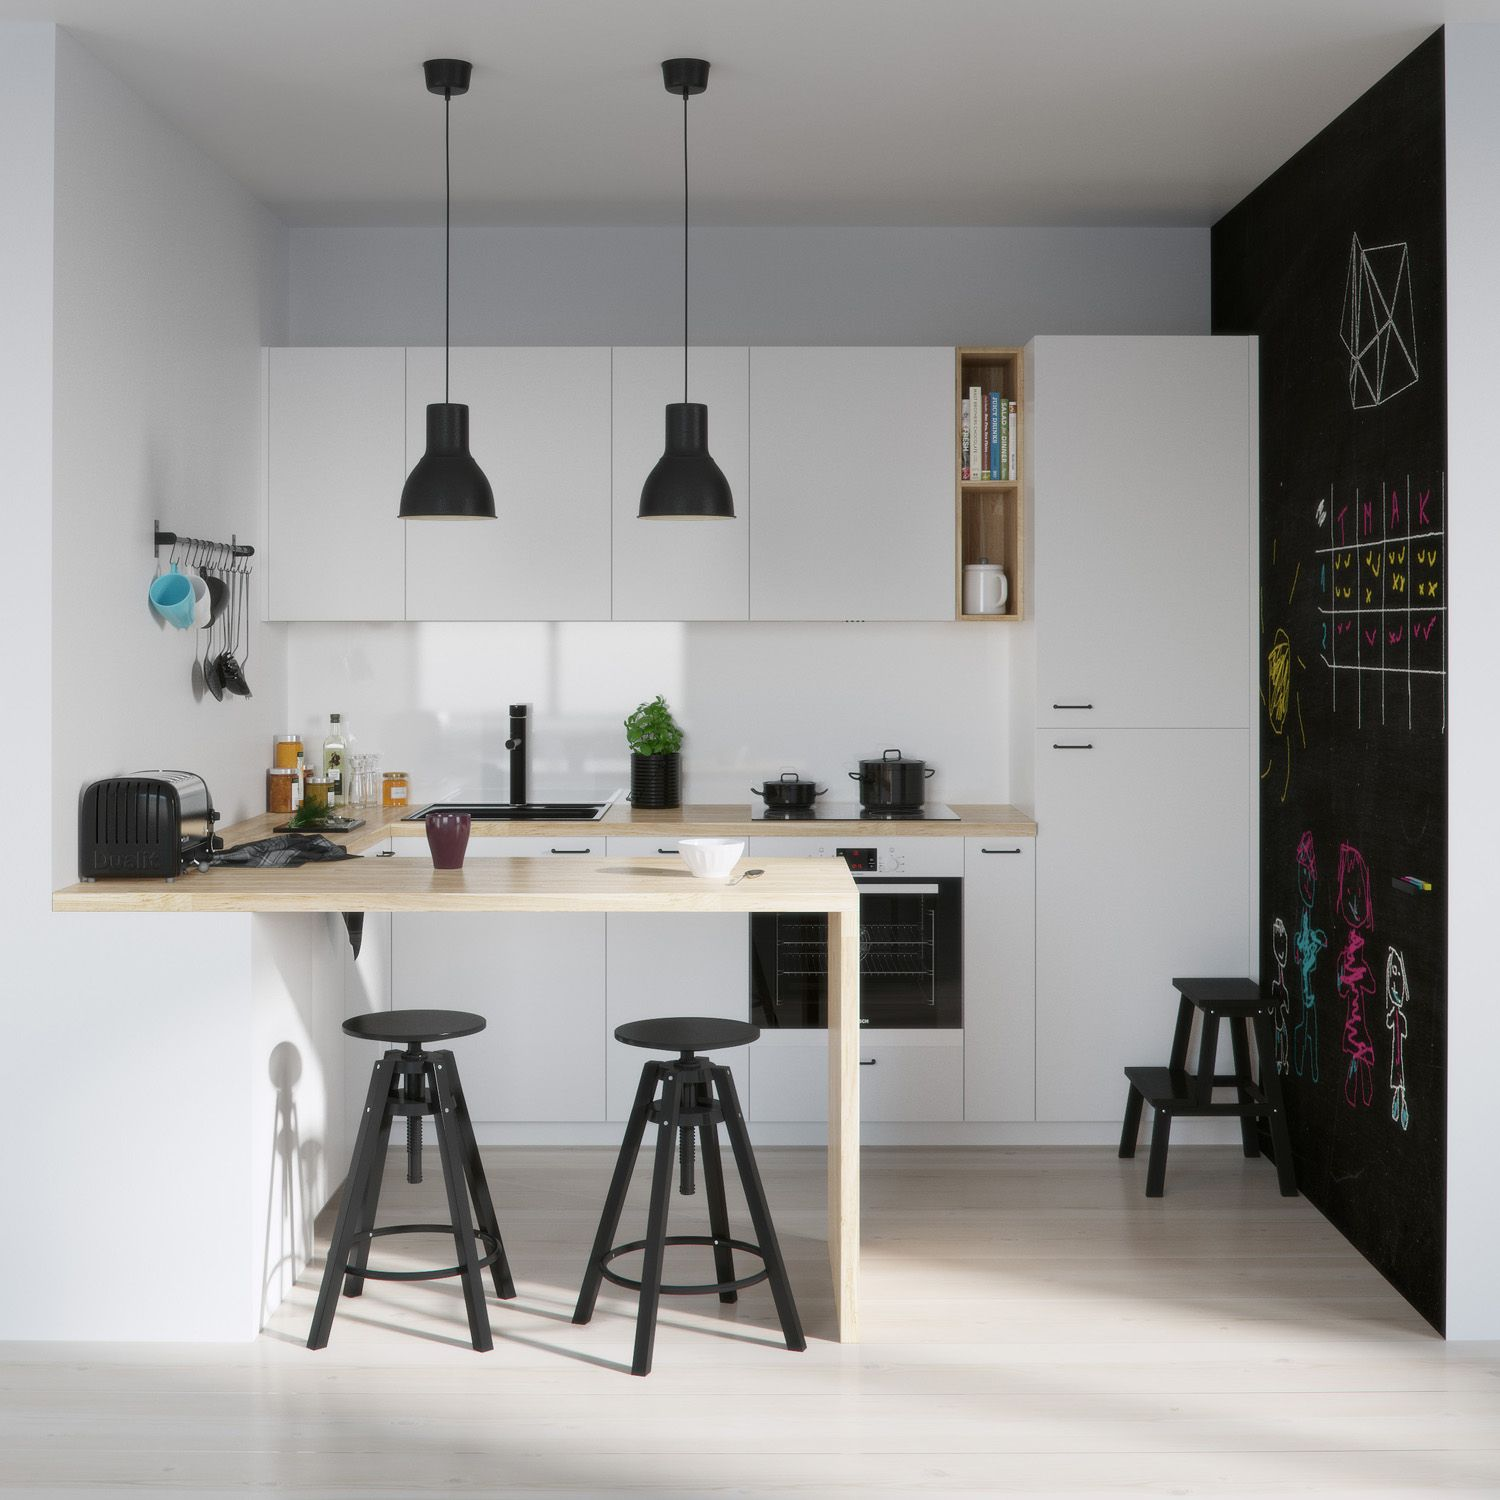 Ikea Kitchen - Tomek Michalski - Design